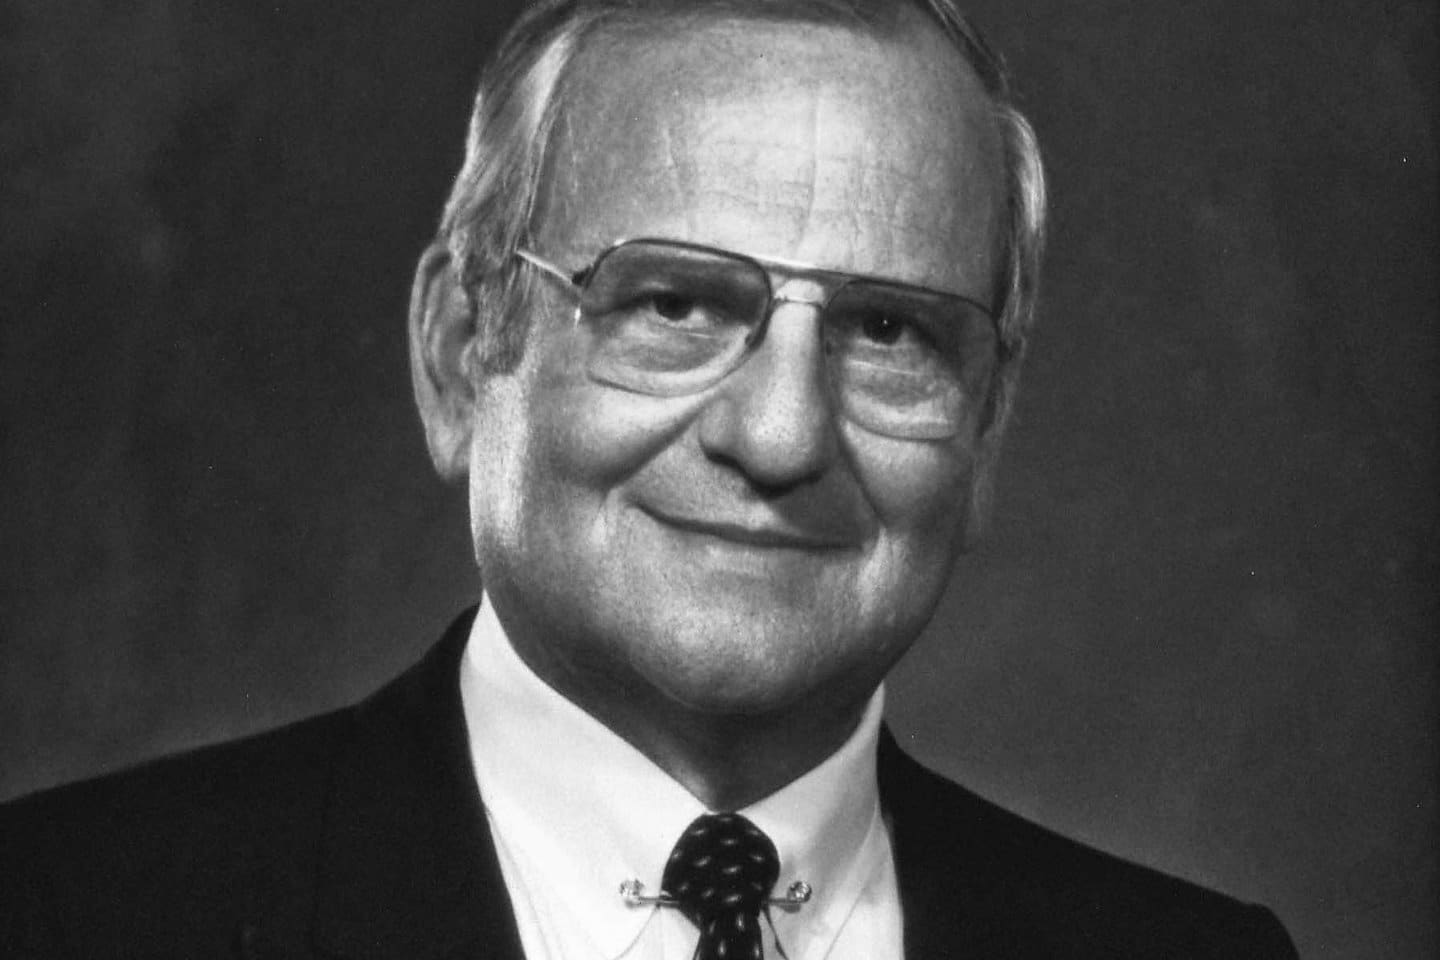 Lee Iacocca, former Chairman of the Chrysler Corporation 1978